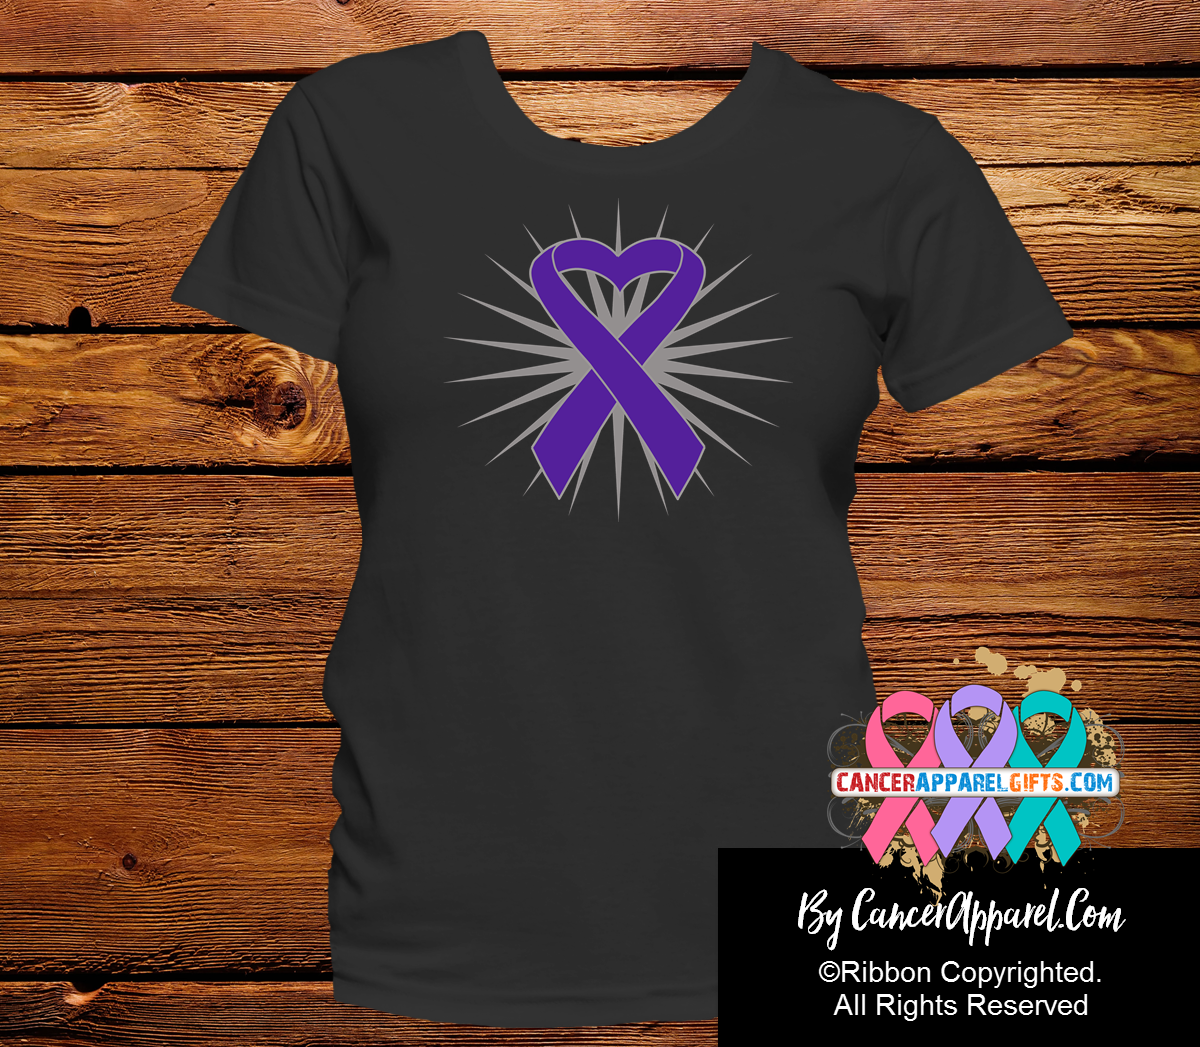 Pancreatic Cancer Awareness Heart Ribbon Shirts - Cancer Apparel and Gifts